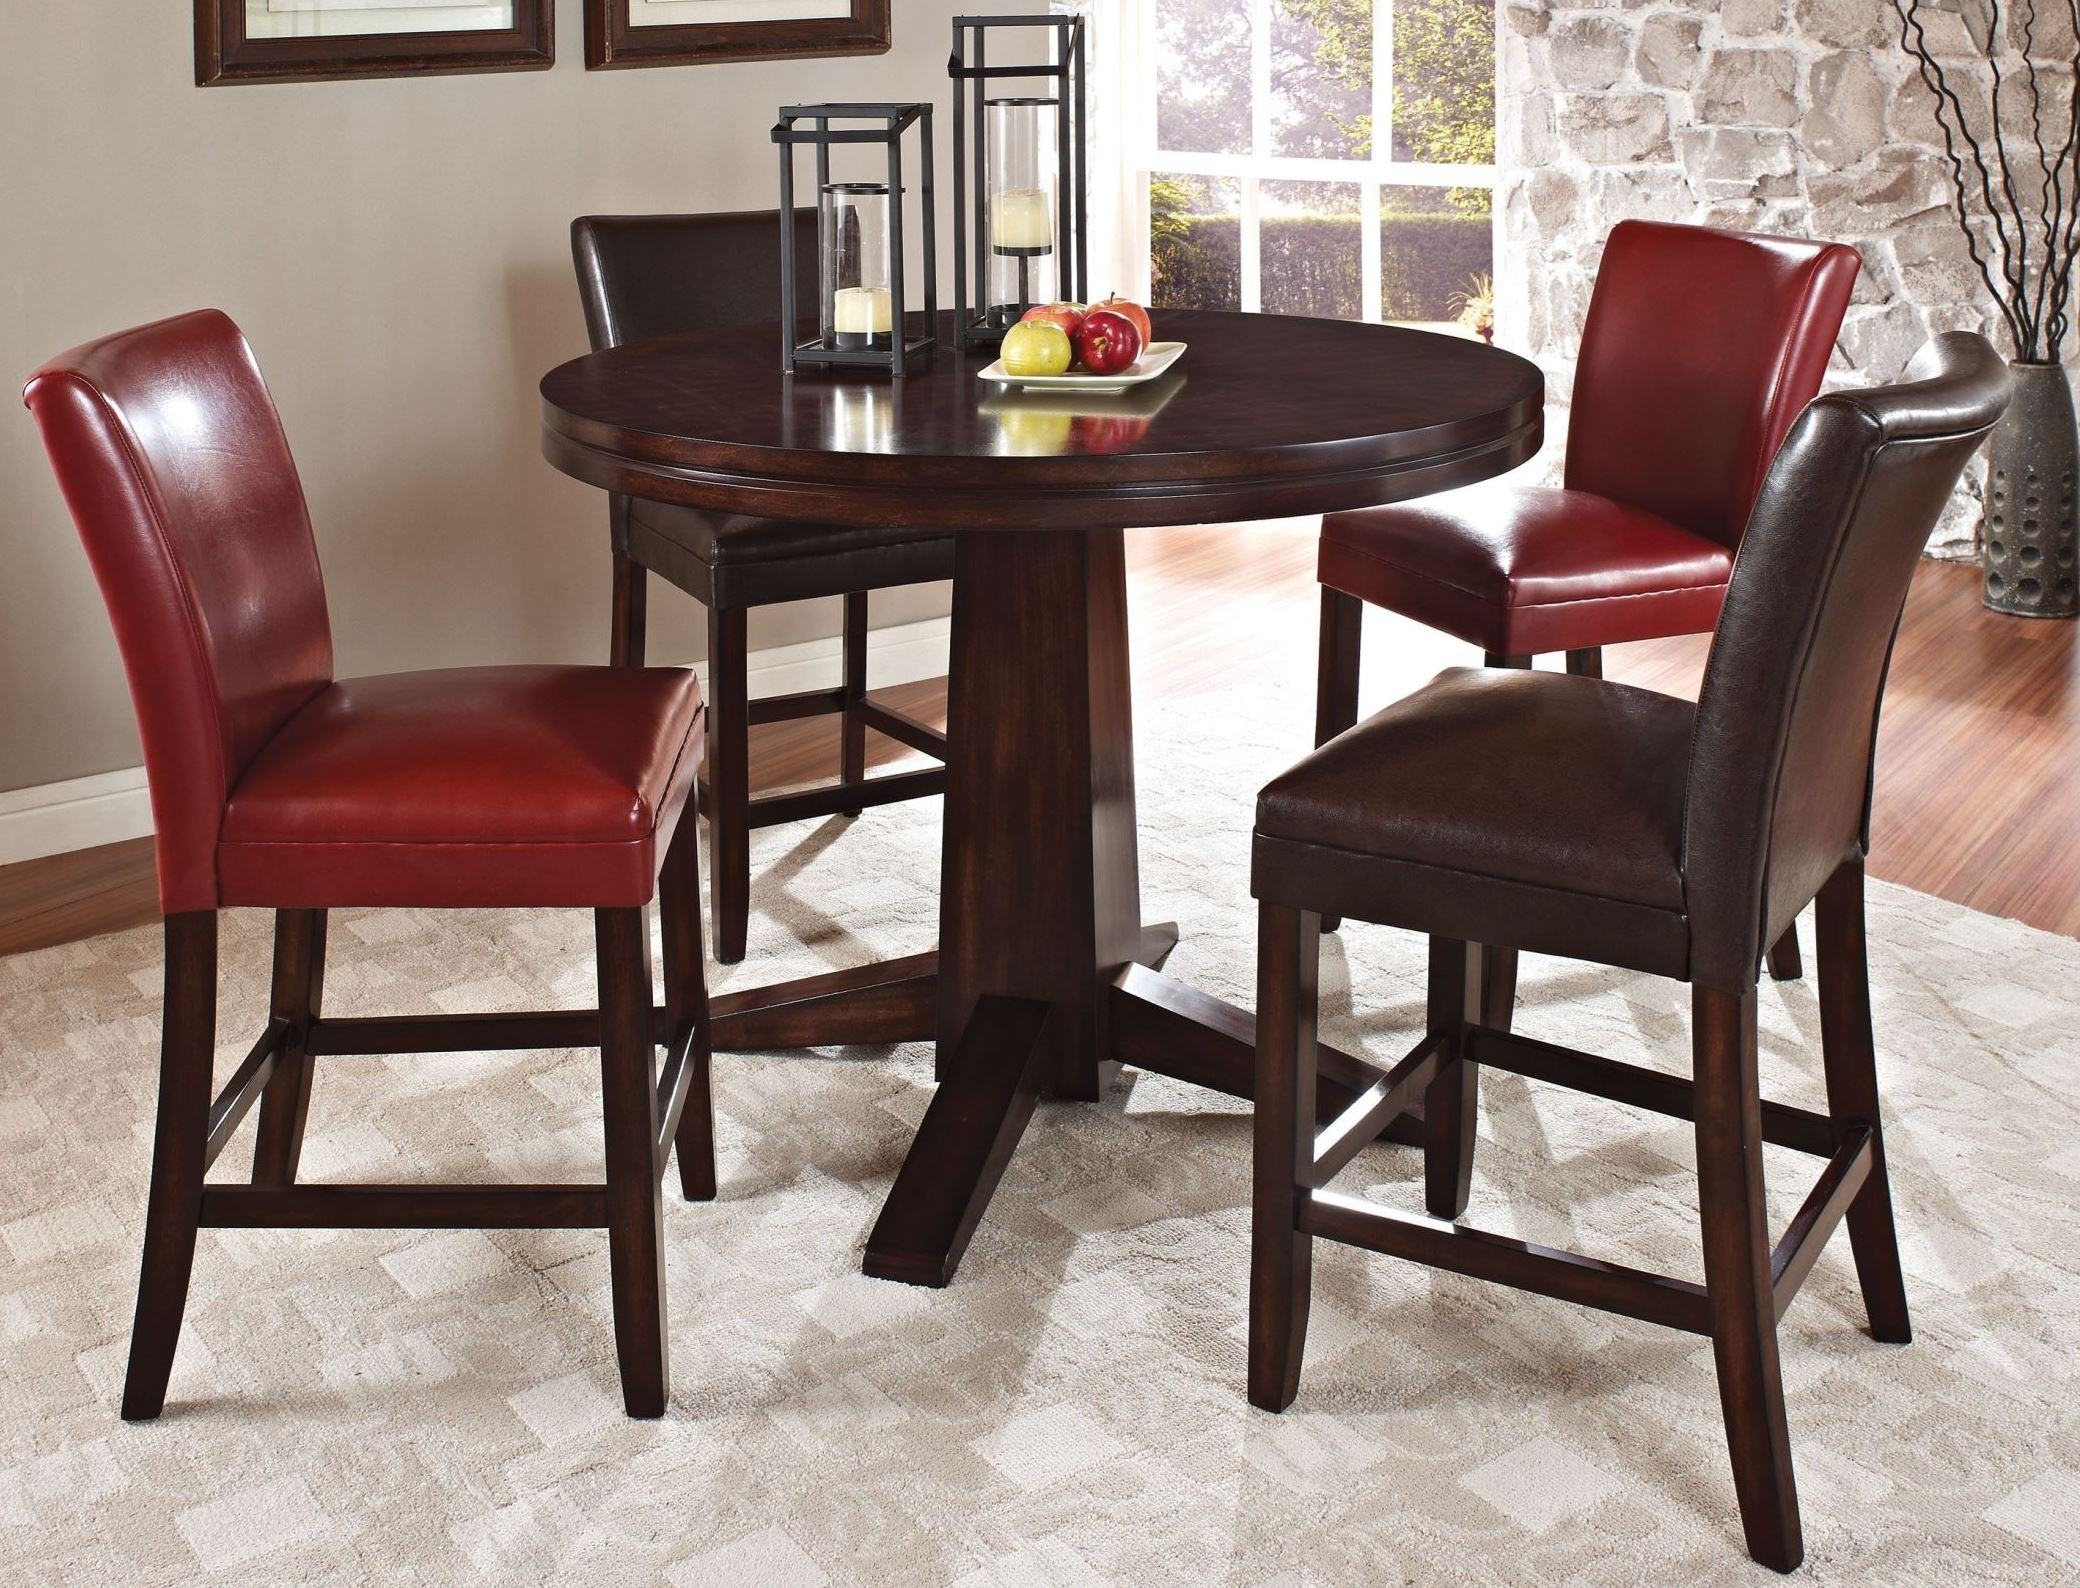 counter height dining room sets hartford round pedestal counter height dining room set from steve silver hf480pb hf480pt 9723